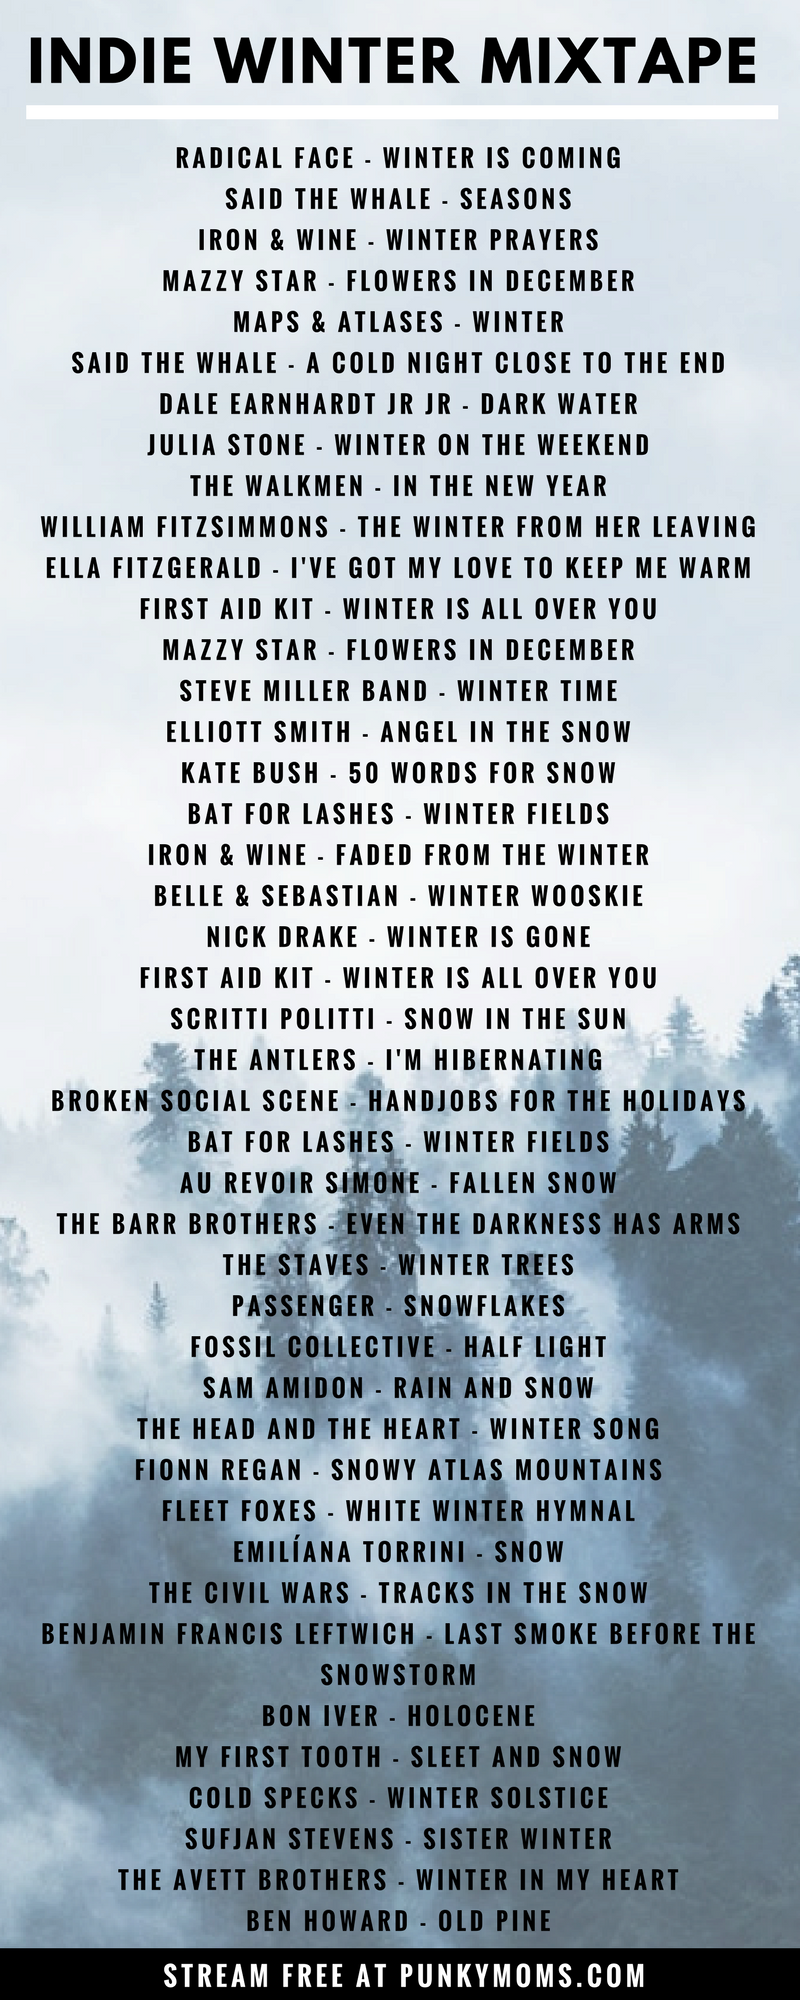 When the leaves turn brown and the skies grey, listen to our 2 hour Spotify playlist of Indie Winter songs. Not one song is about Christmas. Enjoy!